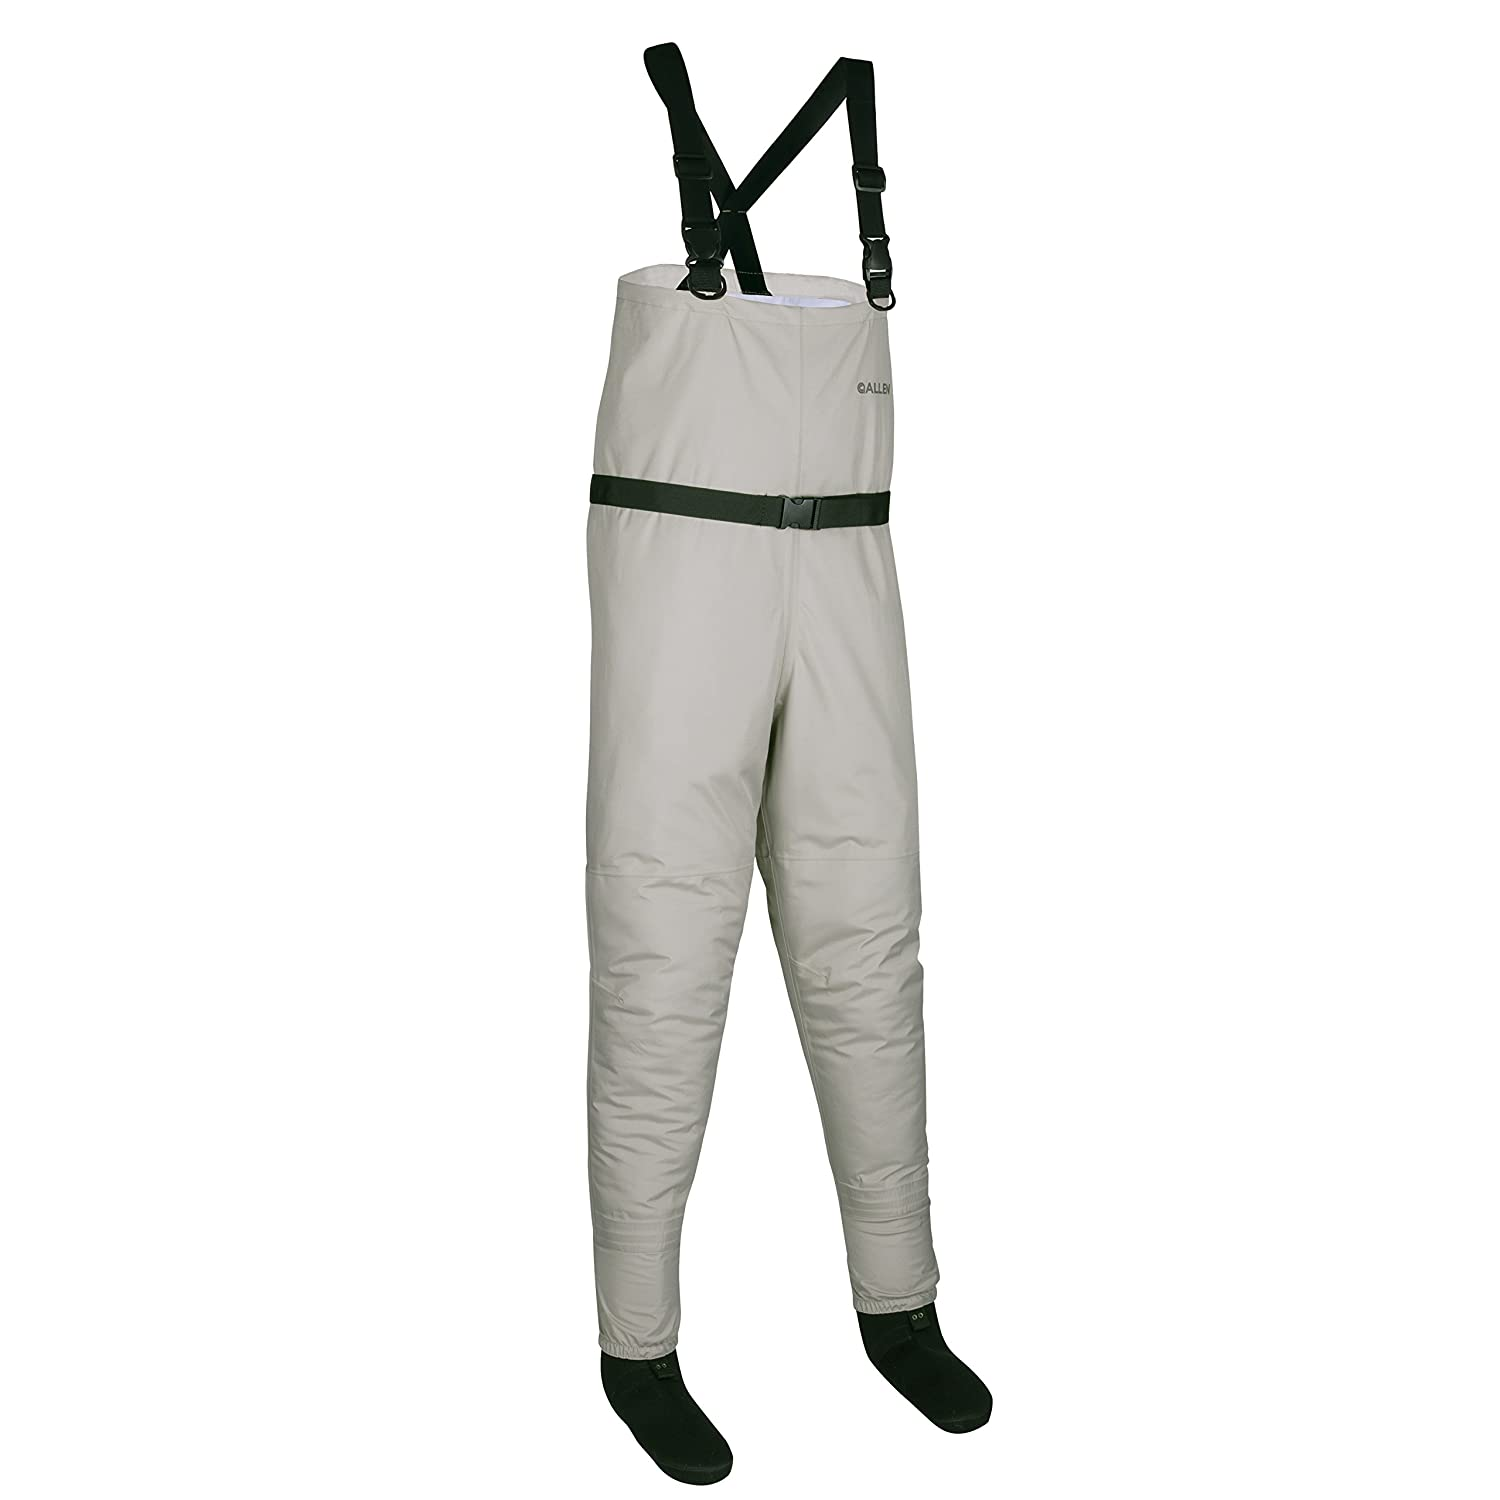 Image of Allen Antero Breathable Stockingfoot Waders Fishing Boots & Waders